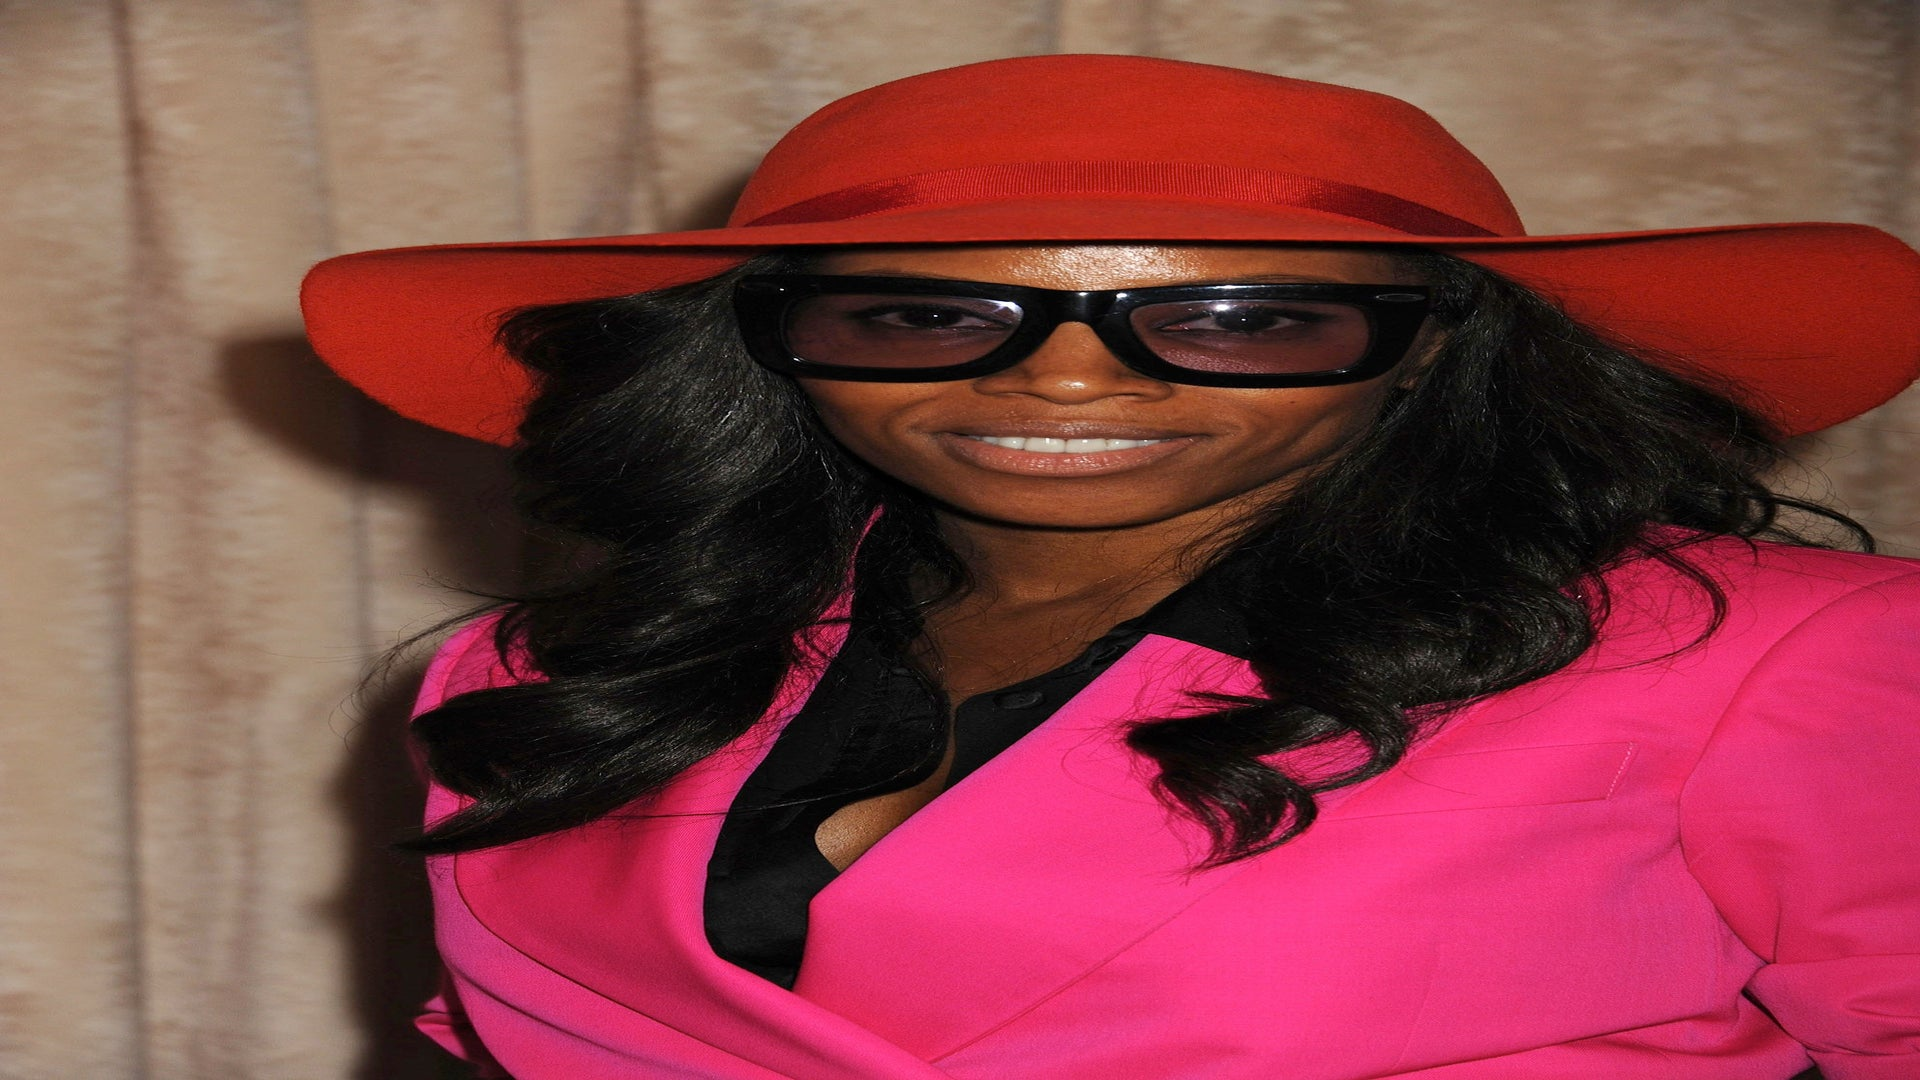 June Ambrose Reality Show Coming in 2012